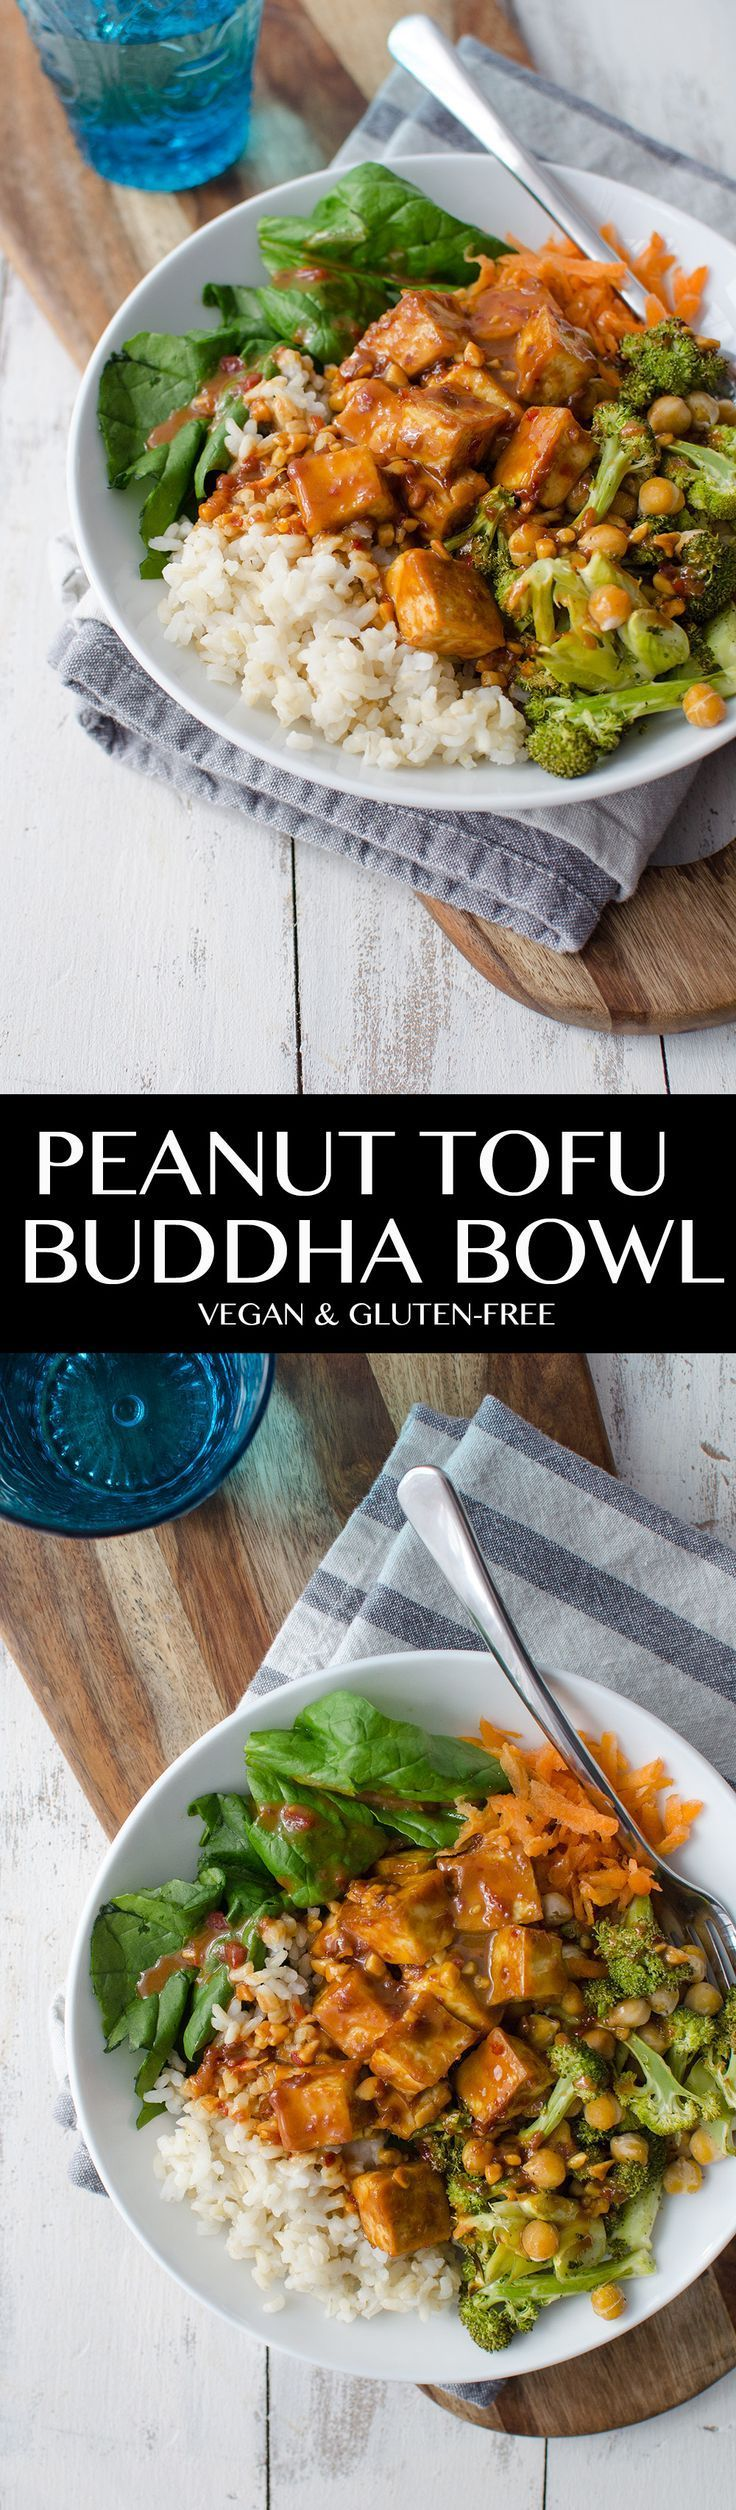 Peanut Tofu Buddha Bowl! A healthy lunch or dinner, perfect for the New Year! Brown rice, the BEST tofu, vegetables, roasted broccoli in a simple peanut sauce. Vegan and Gluten-Free. | http://www.delishknowledge.com